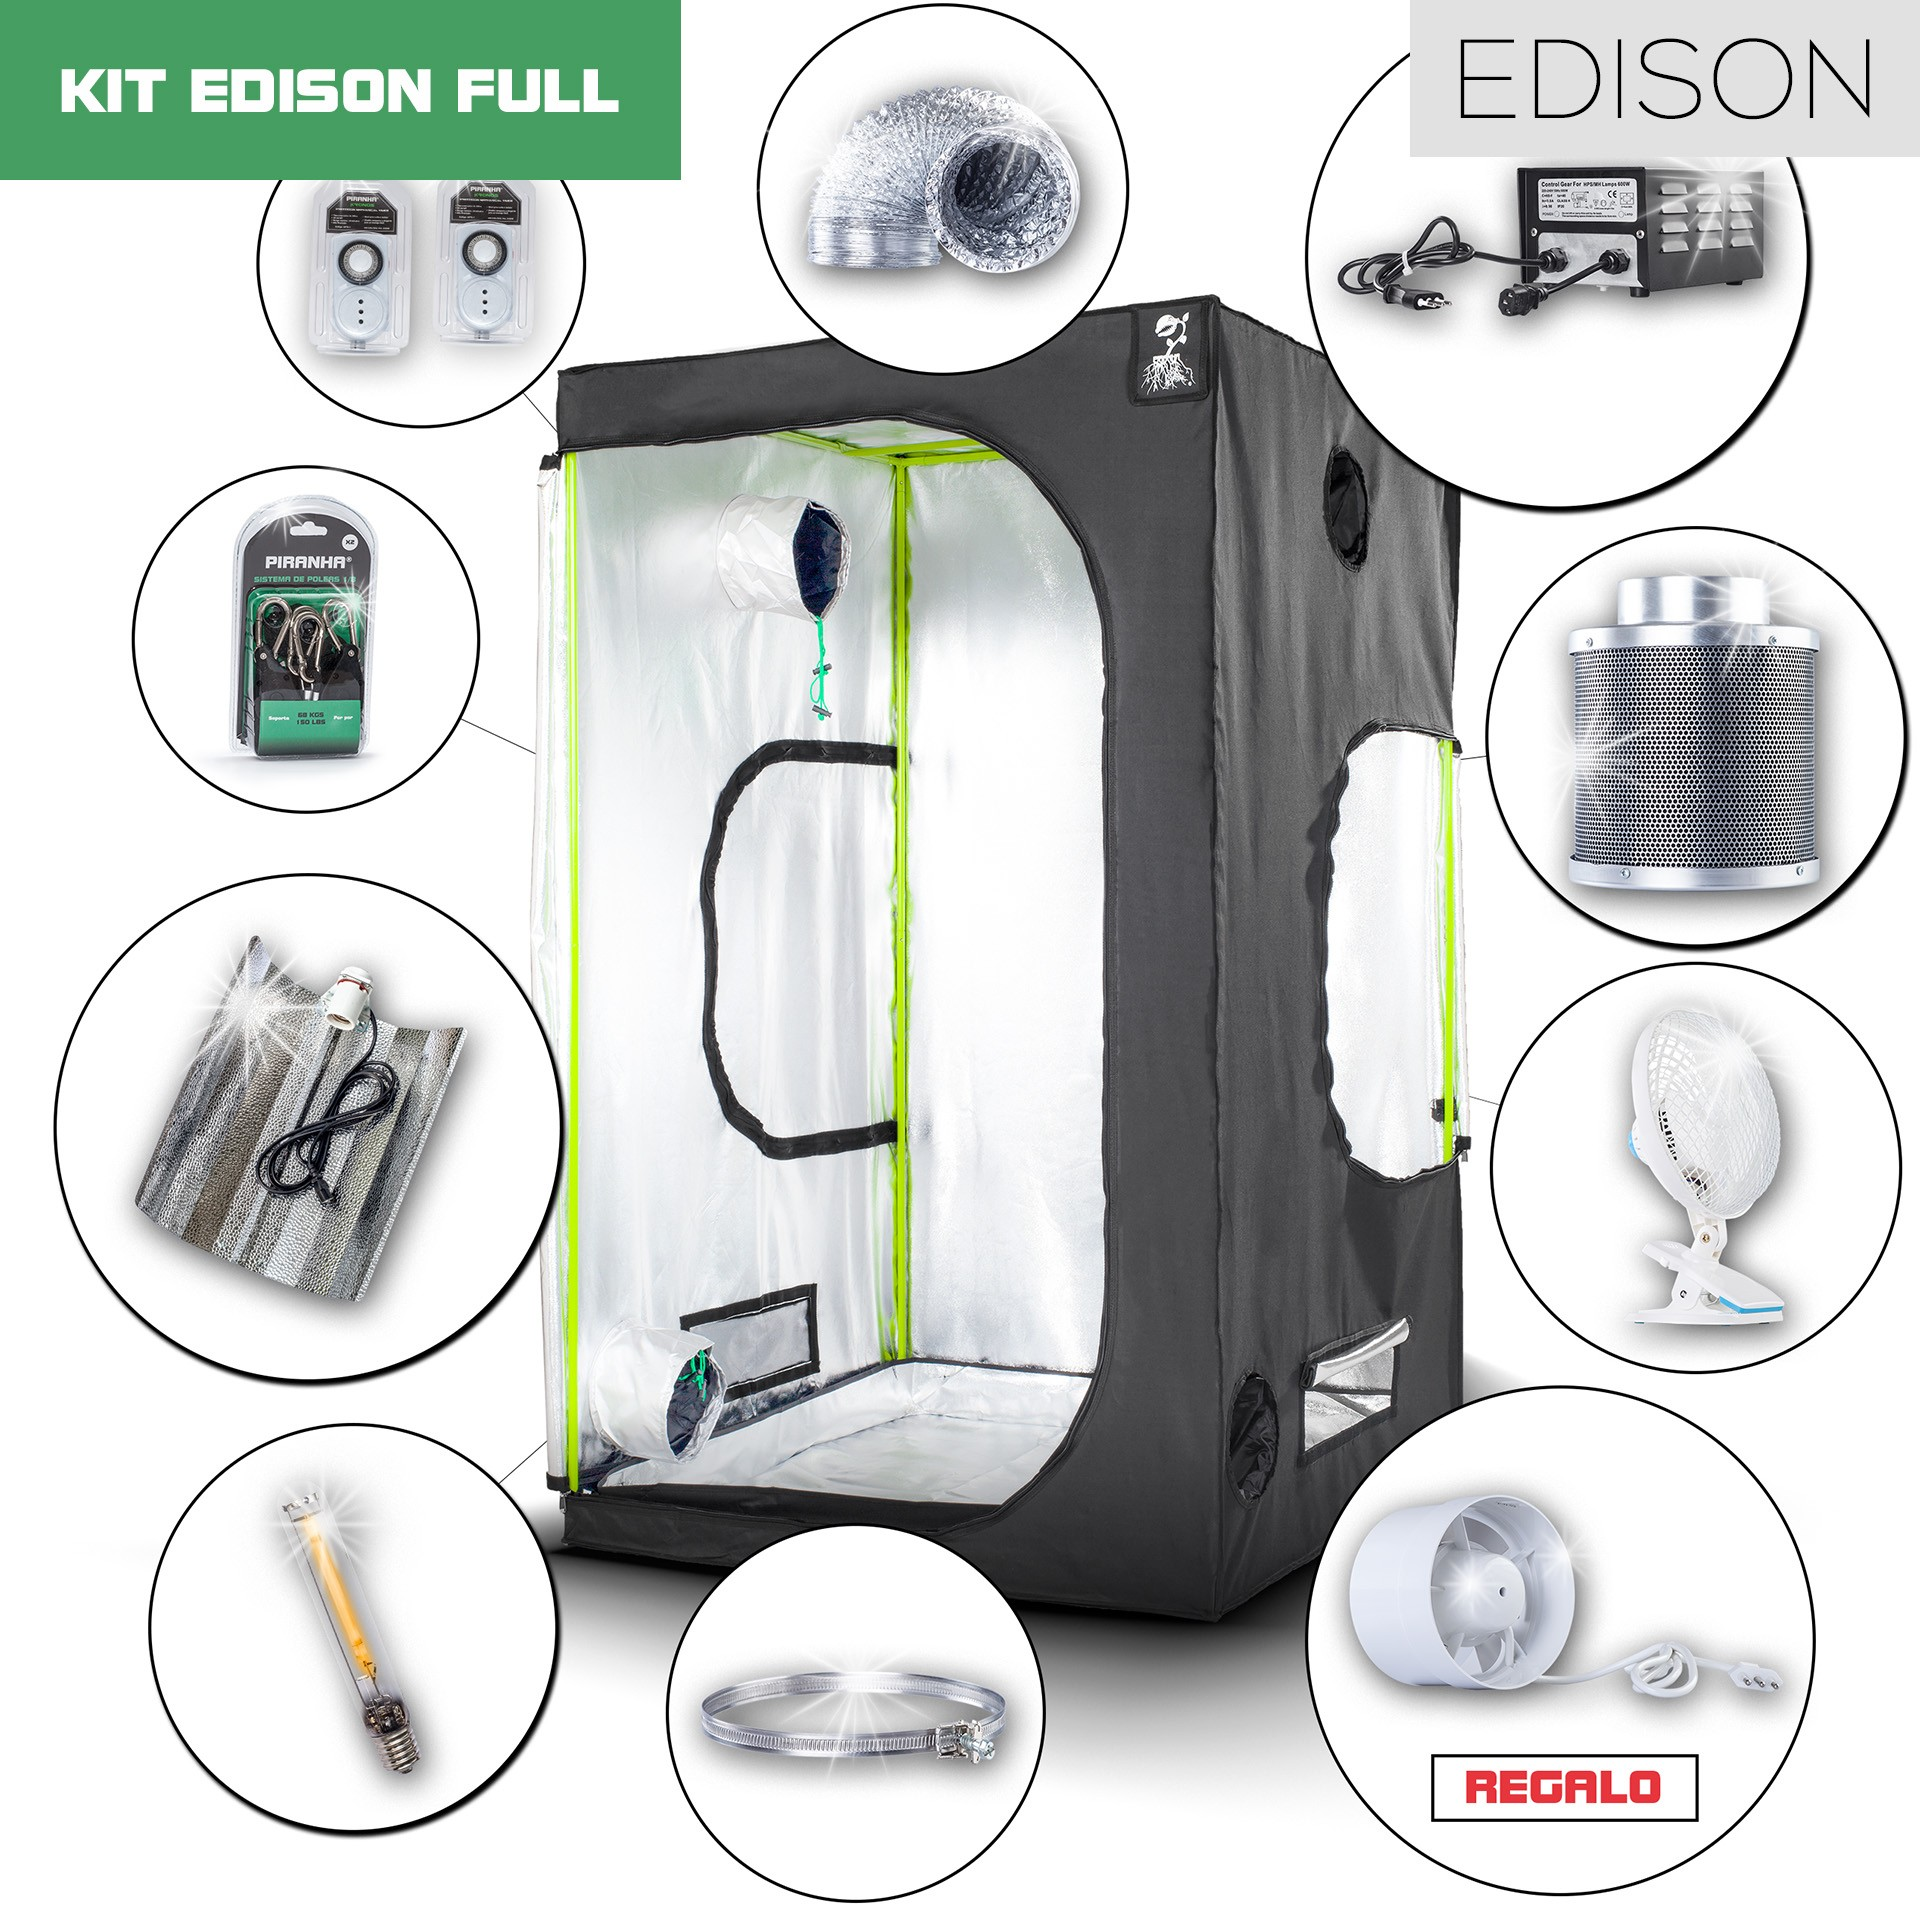 Kit Edison 120 - 600W Full